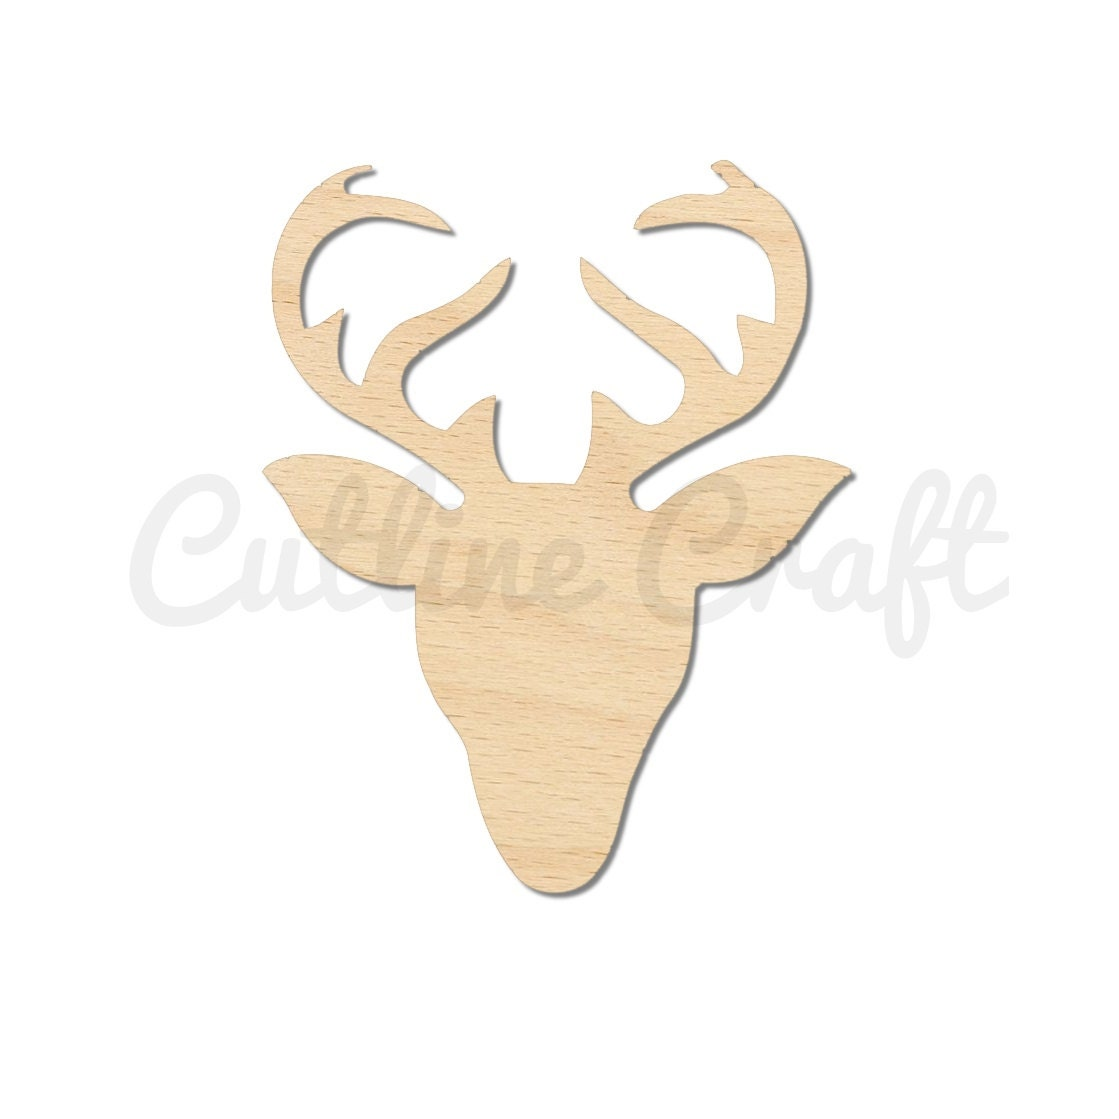 Reindeer Head Deer Antlers Christmas 1158 Cutout Crafts Gift